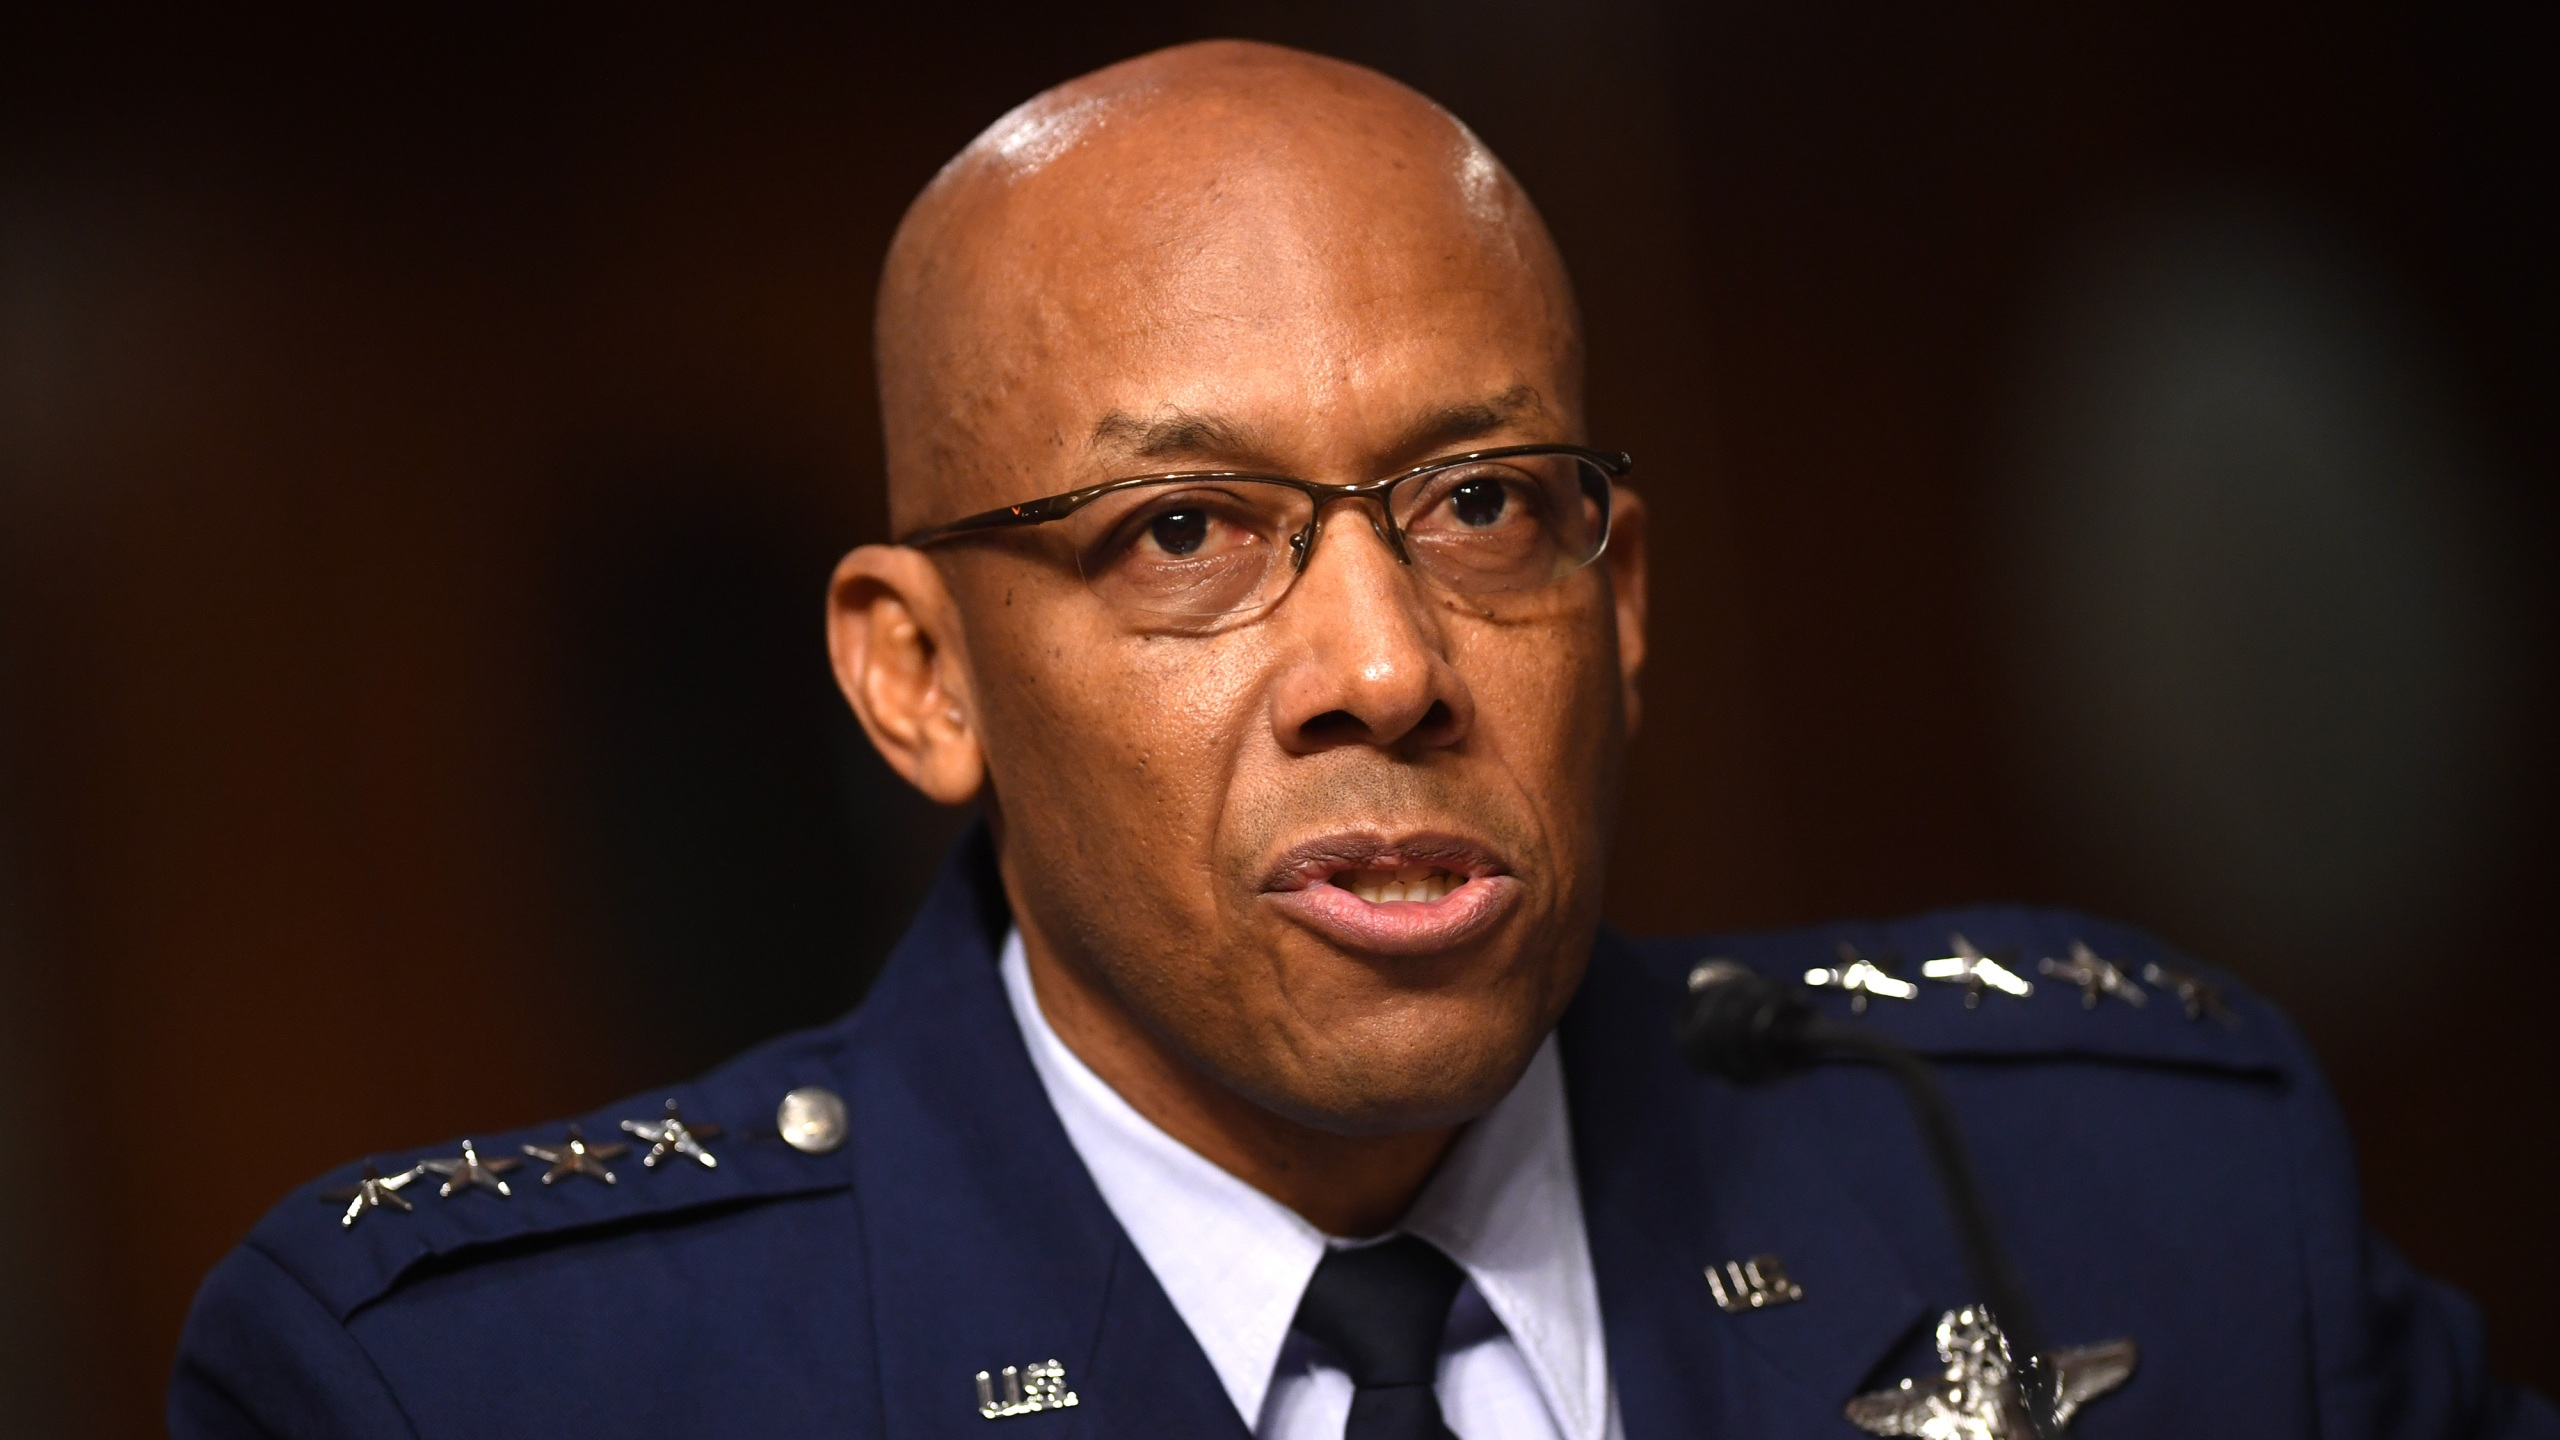 Gen. Charles Q. Brown, Jr., nominated for reappointment as Chief Of Staff of the U.S. Air Force, testifies during a Senate Armed Services hearing on May 7, 2020. (Kevin Dietsch-Pool/Getty Images)